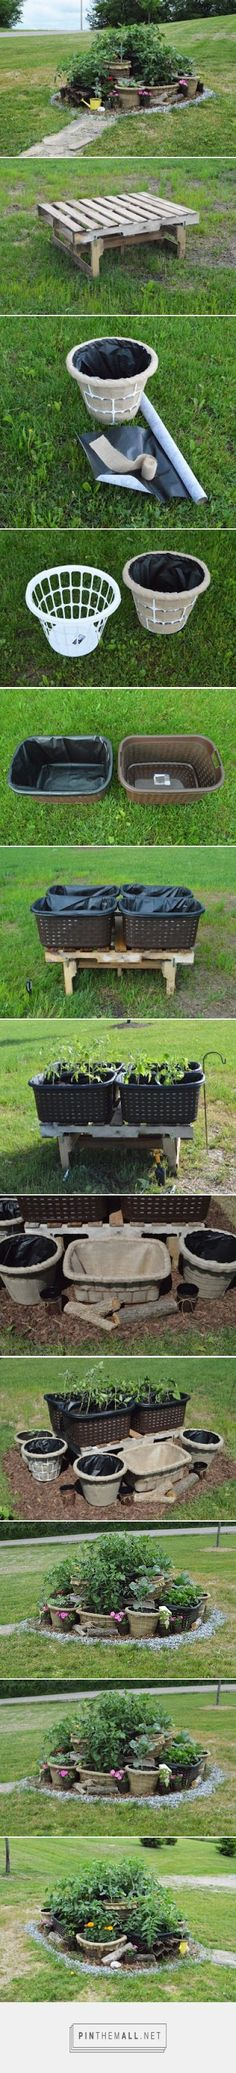 The Chic Burlap Boutique Blog: Laundry Basket Gardening - How to Turn Cheap Everyday Laundry Baskets into a Beautiful Multi-Level Potted Garden! thechicburlapbout... #DIY #Garden #SmallGarden #SpaceSaver #SquareFootGarden #Organic #Summer #GrowItYourself #Crafty #LaundryBasket #BasketGarden #Planters #PottedPlants